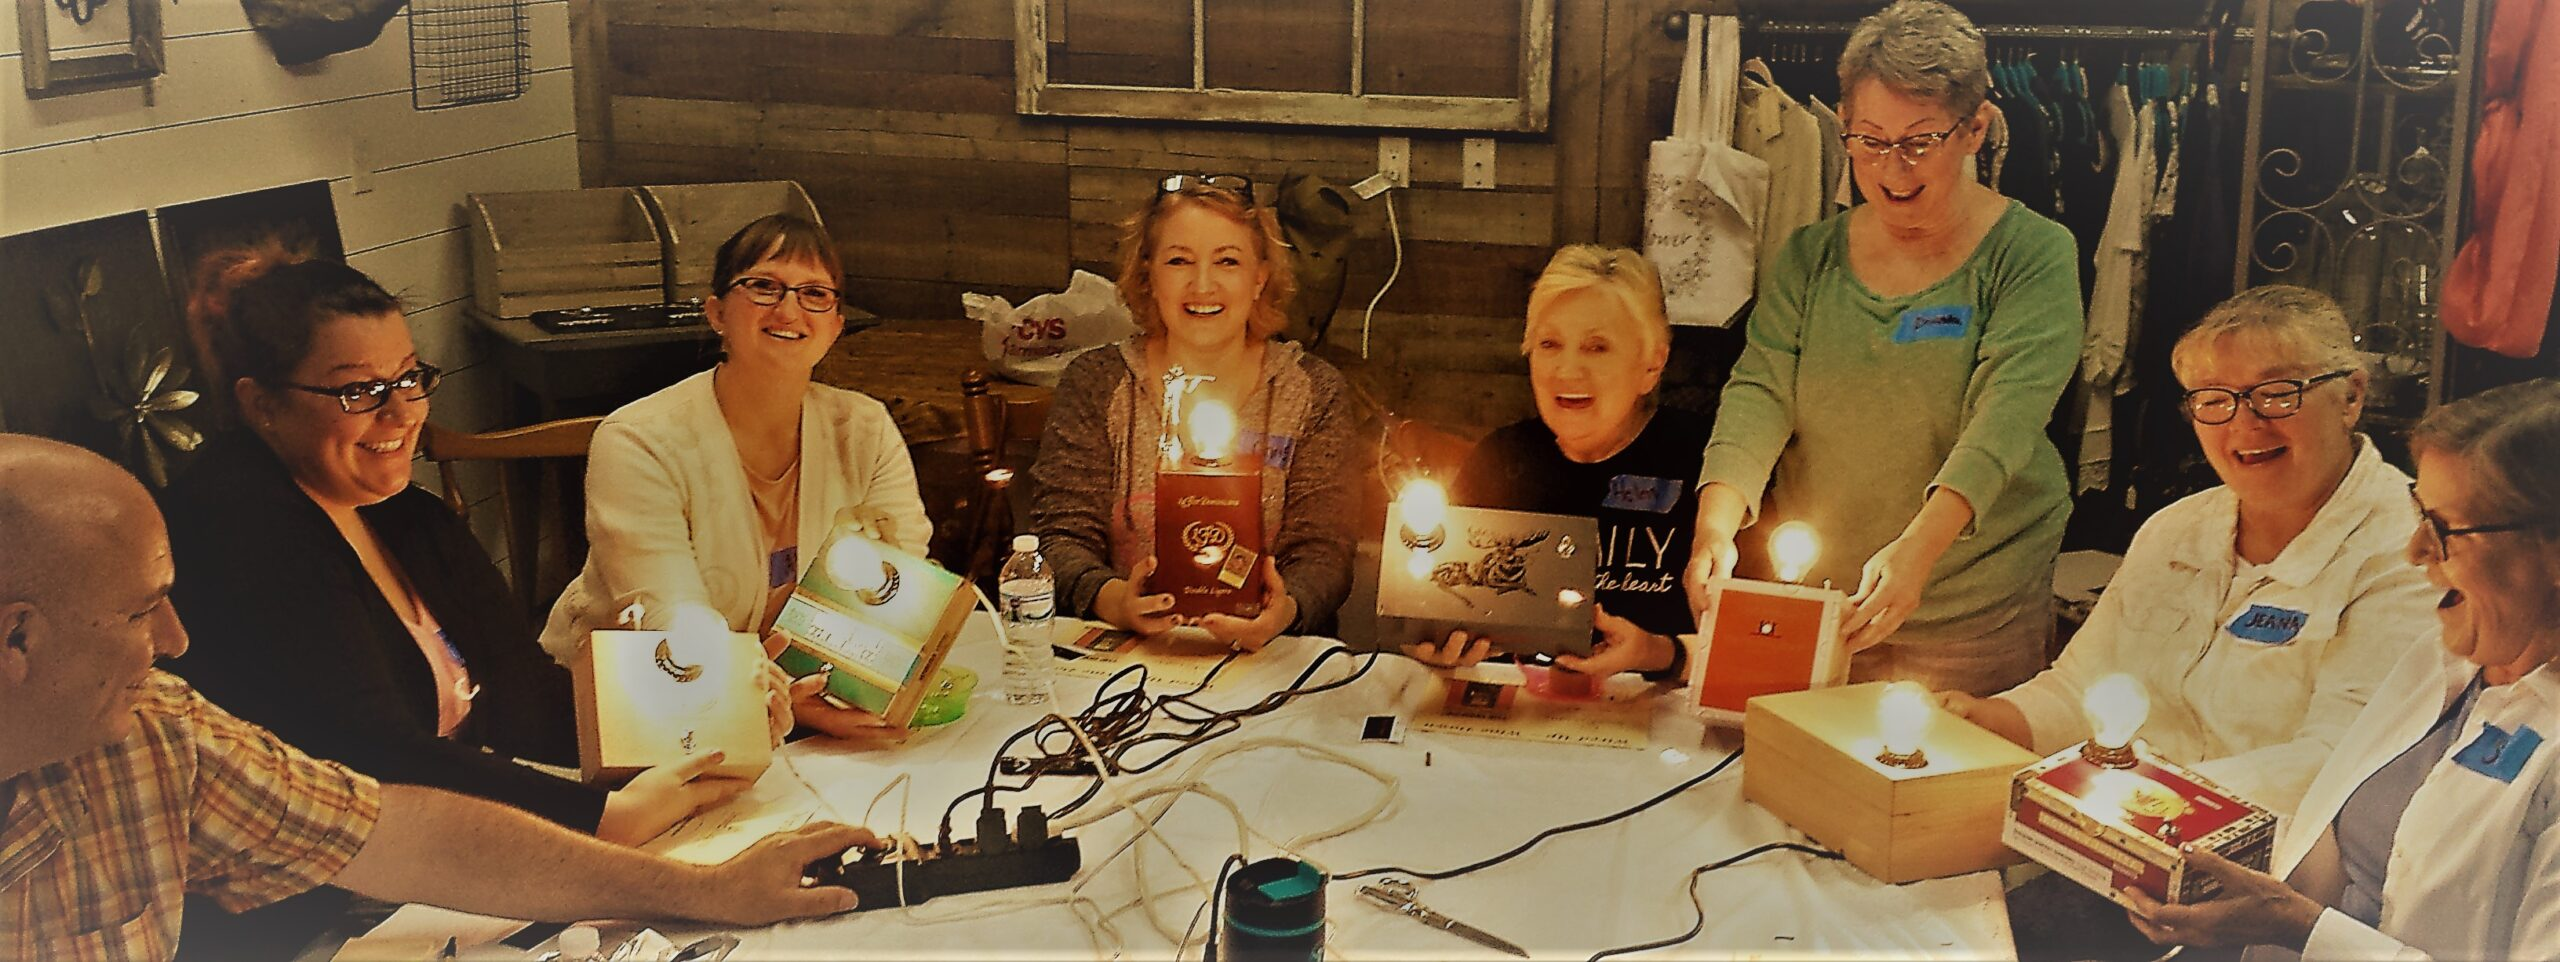 A group of 6 women respond with joy when the switch is flipped and their cigar box lamps light up.